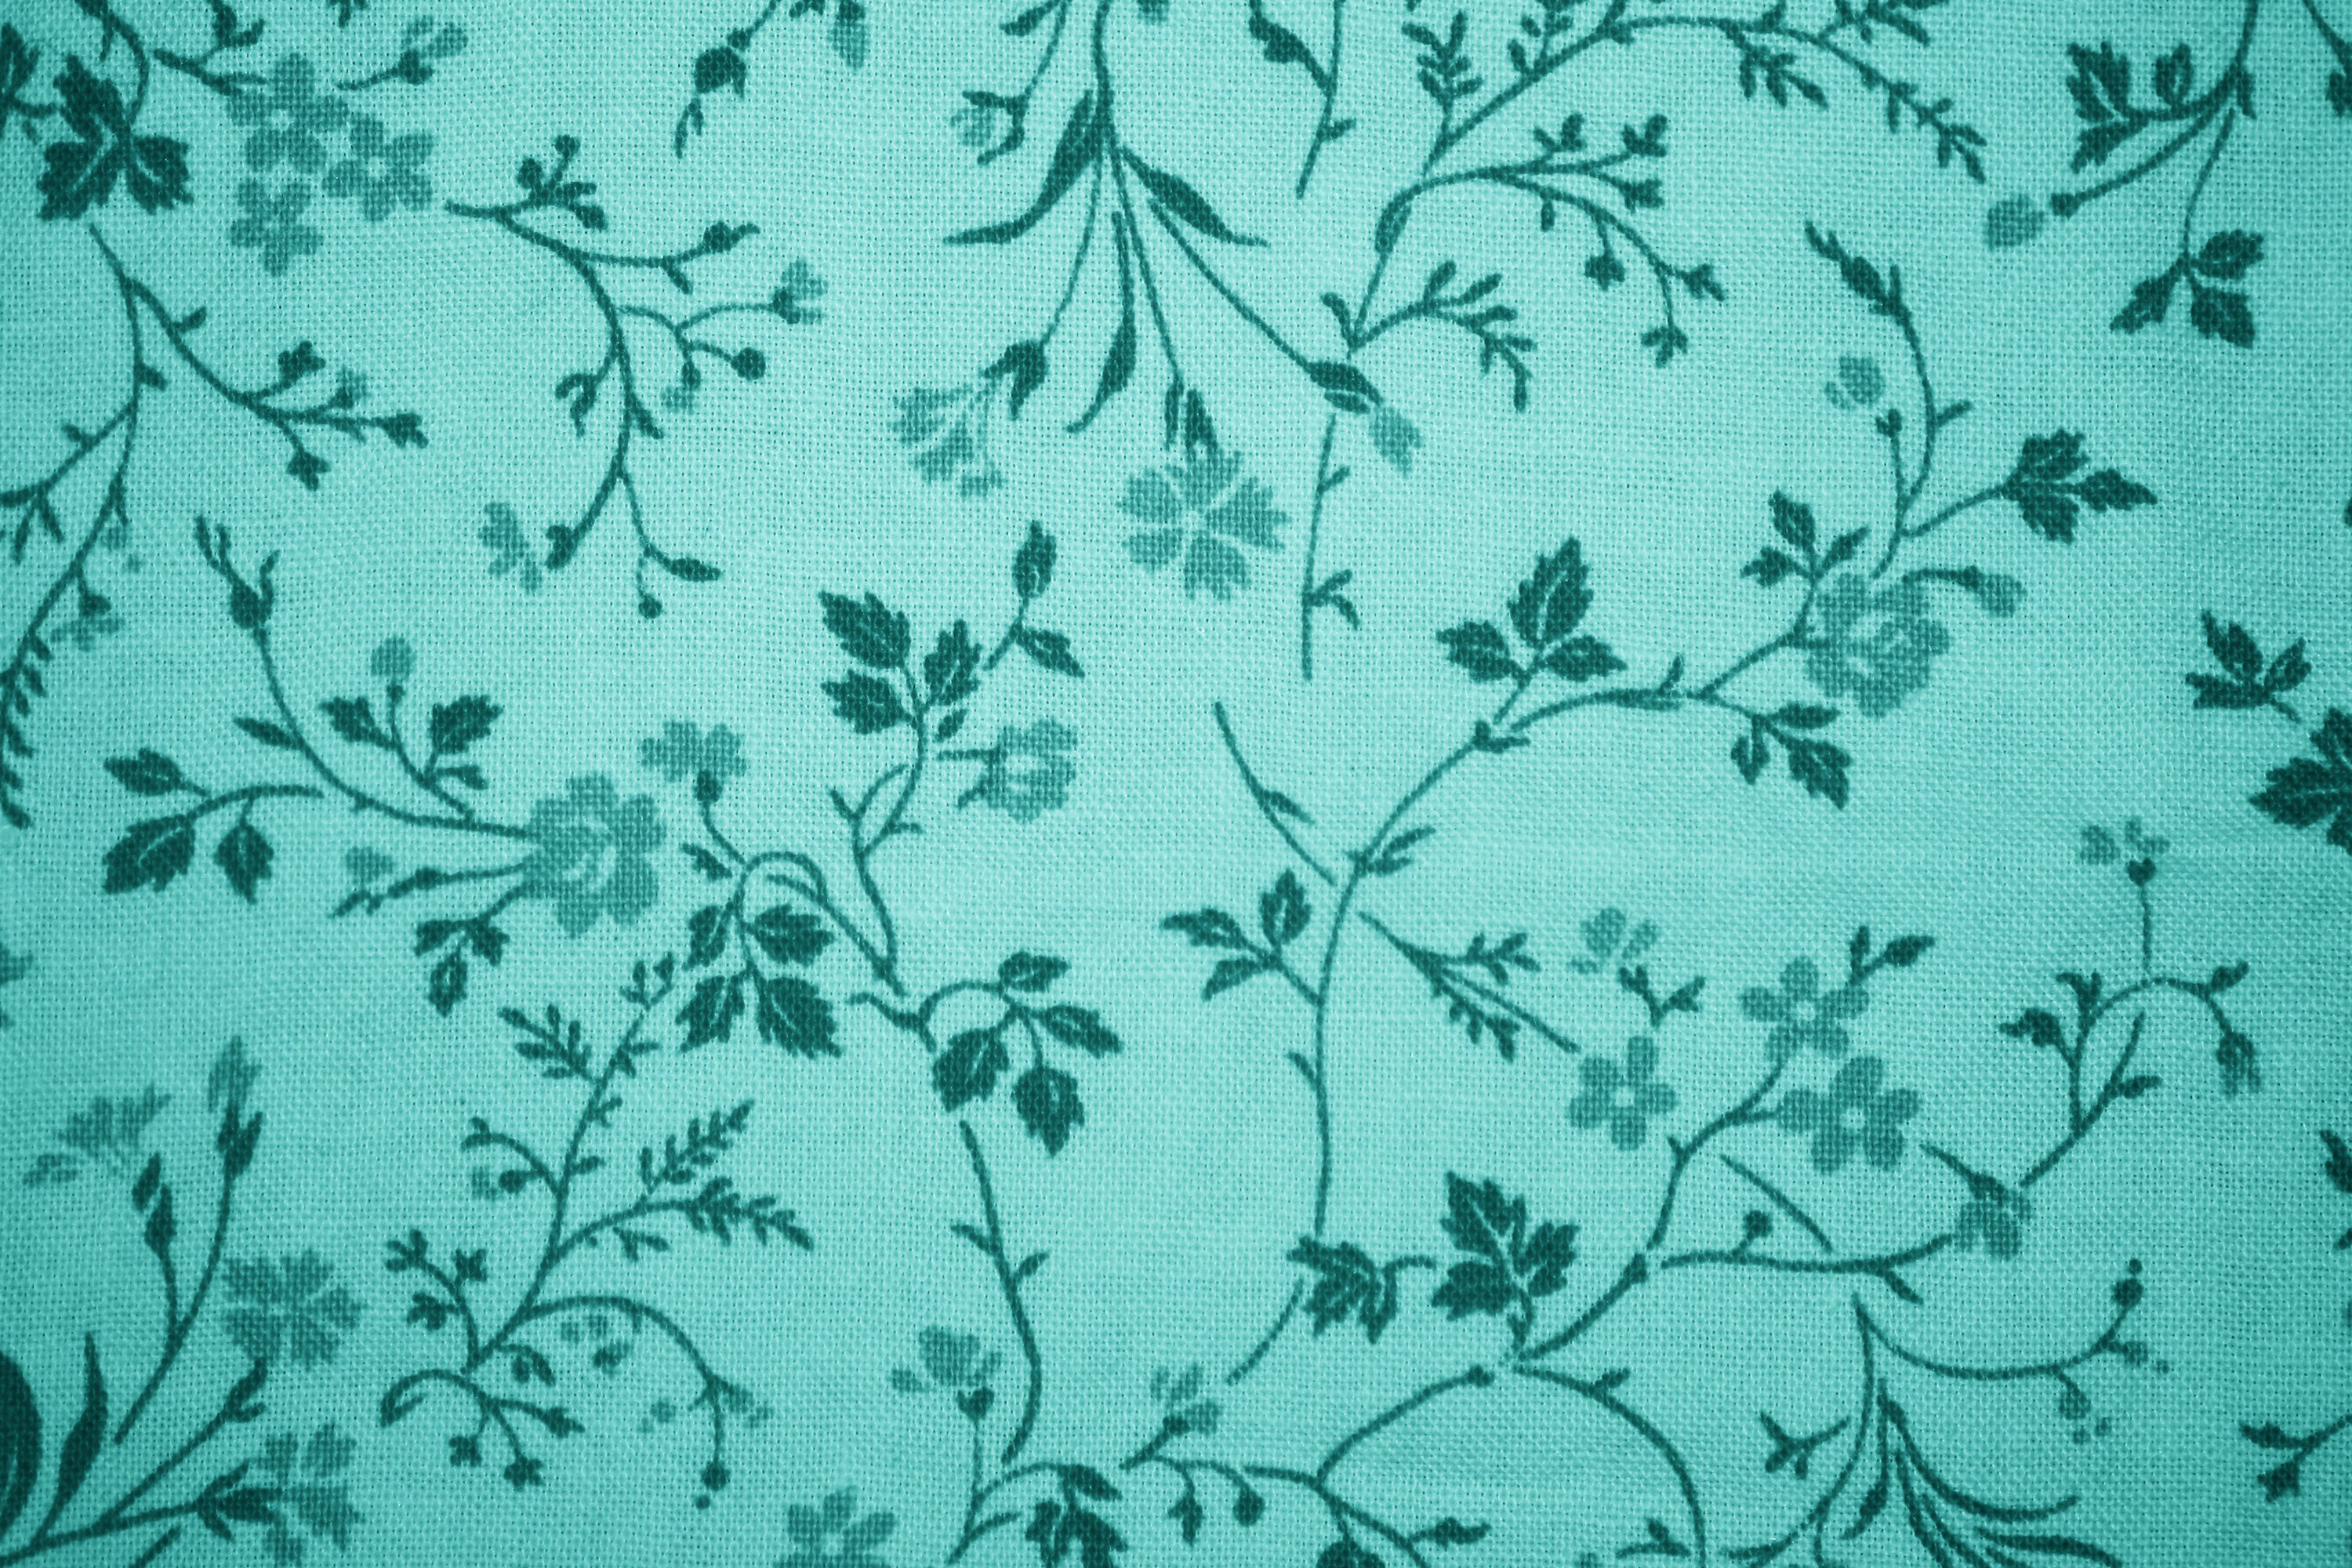 Teal Floral Print Fabric Texture Picture Free Photograph